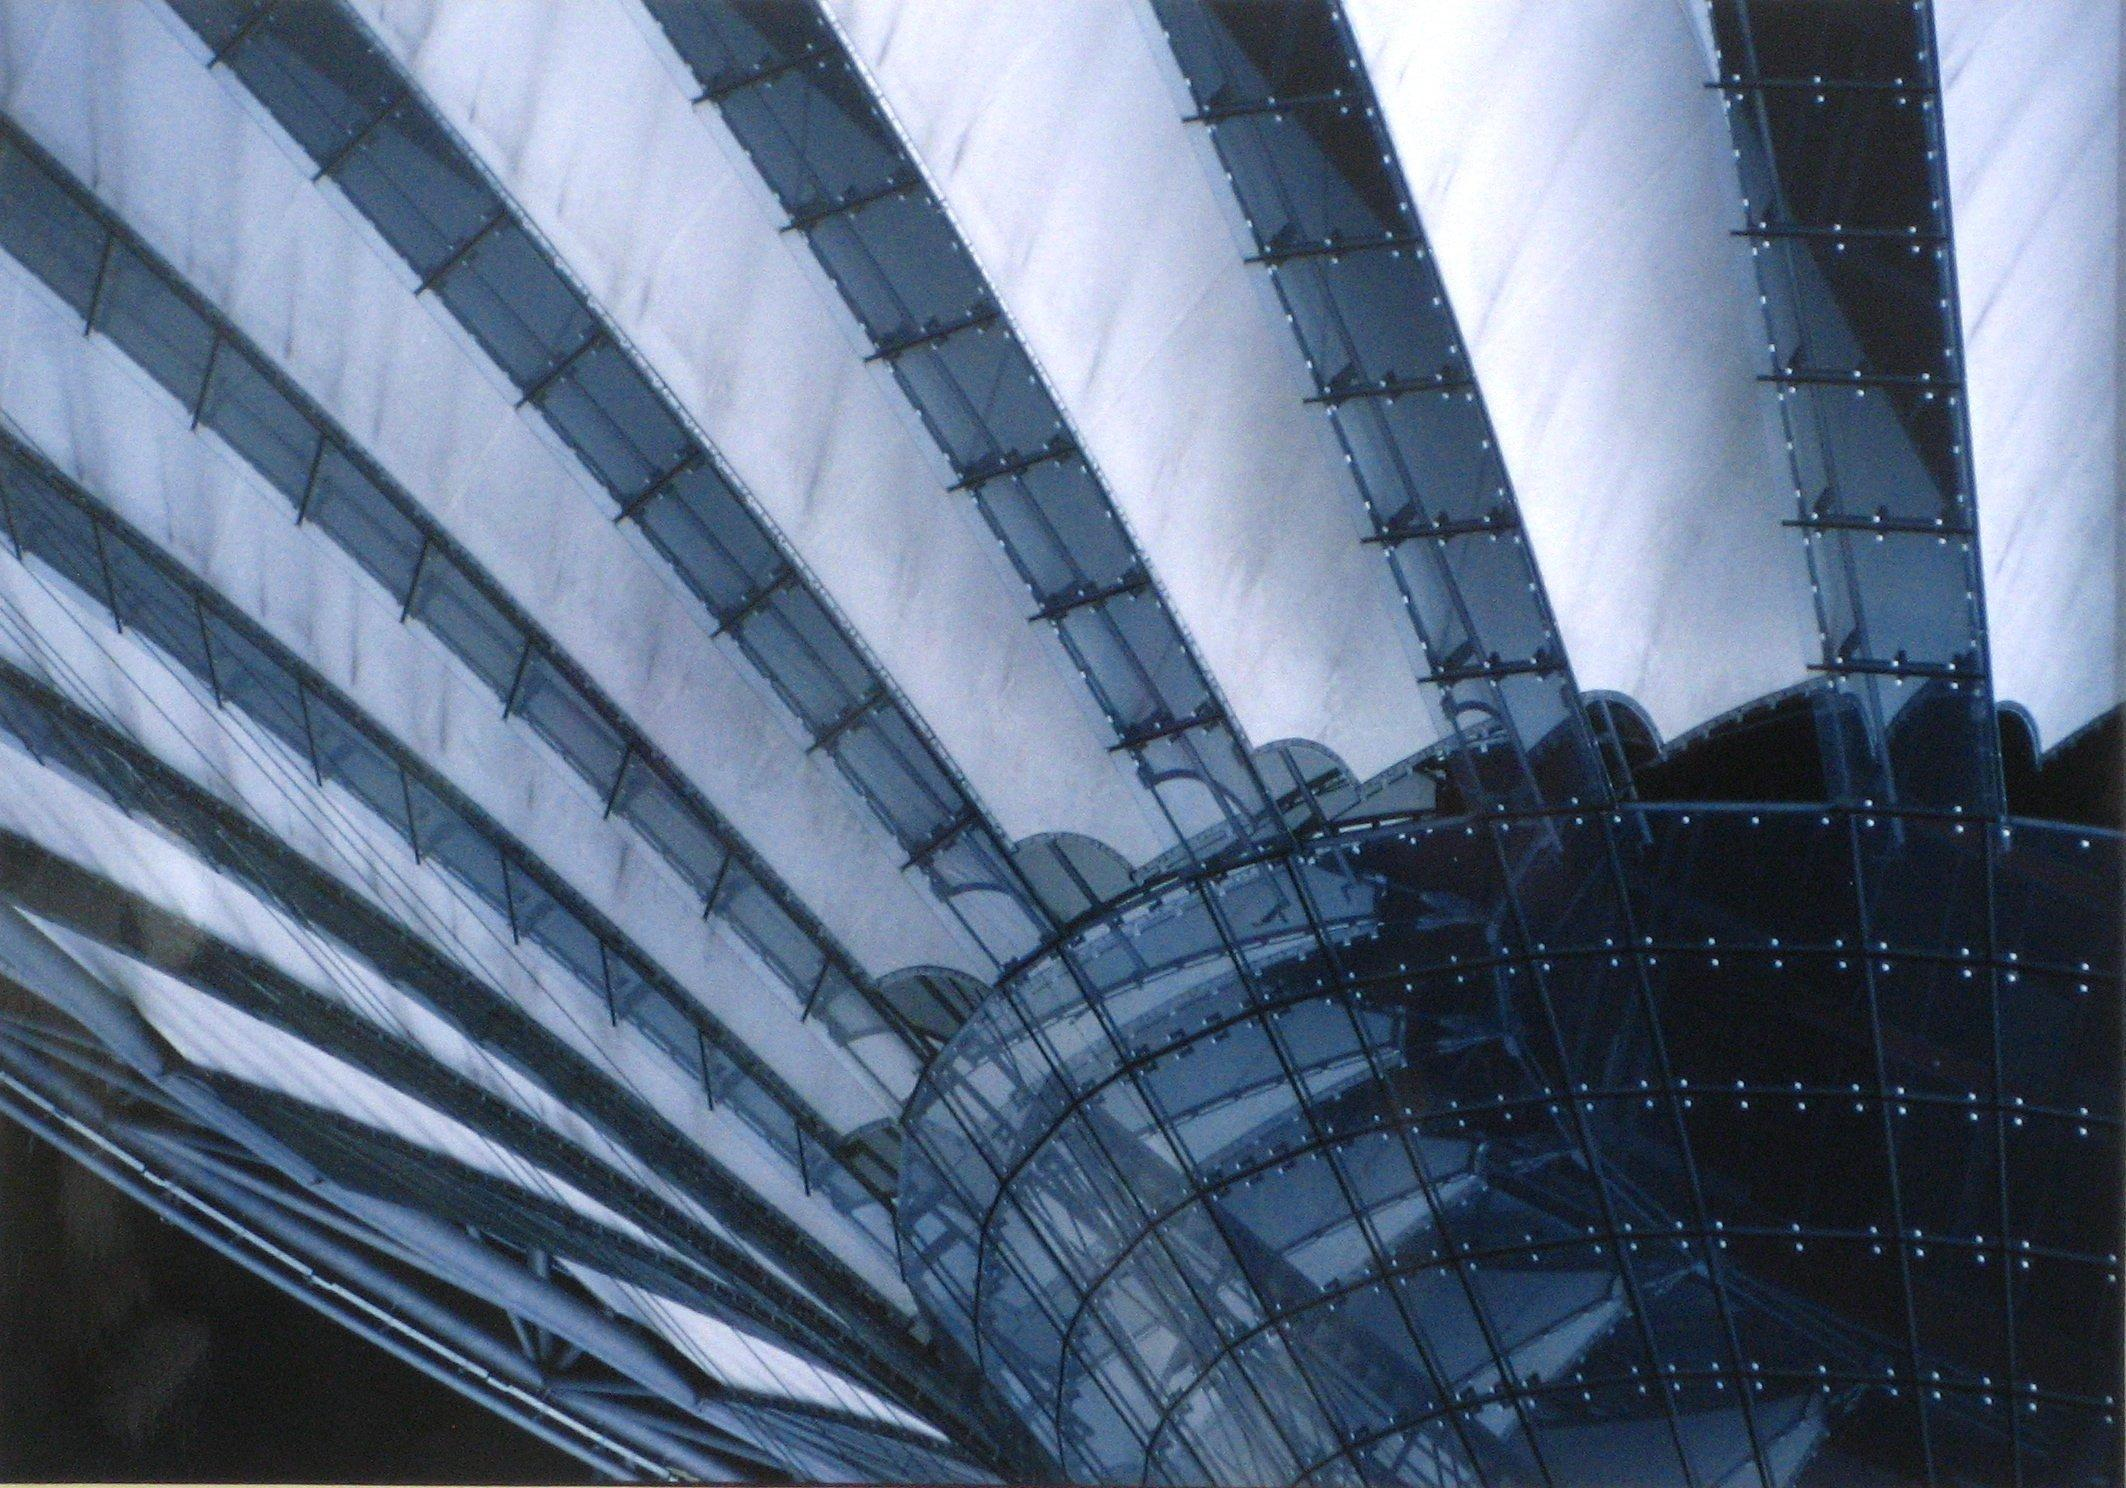 Soaring Architectural Abstract 1970s Color Photograph